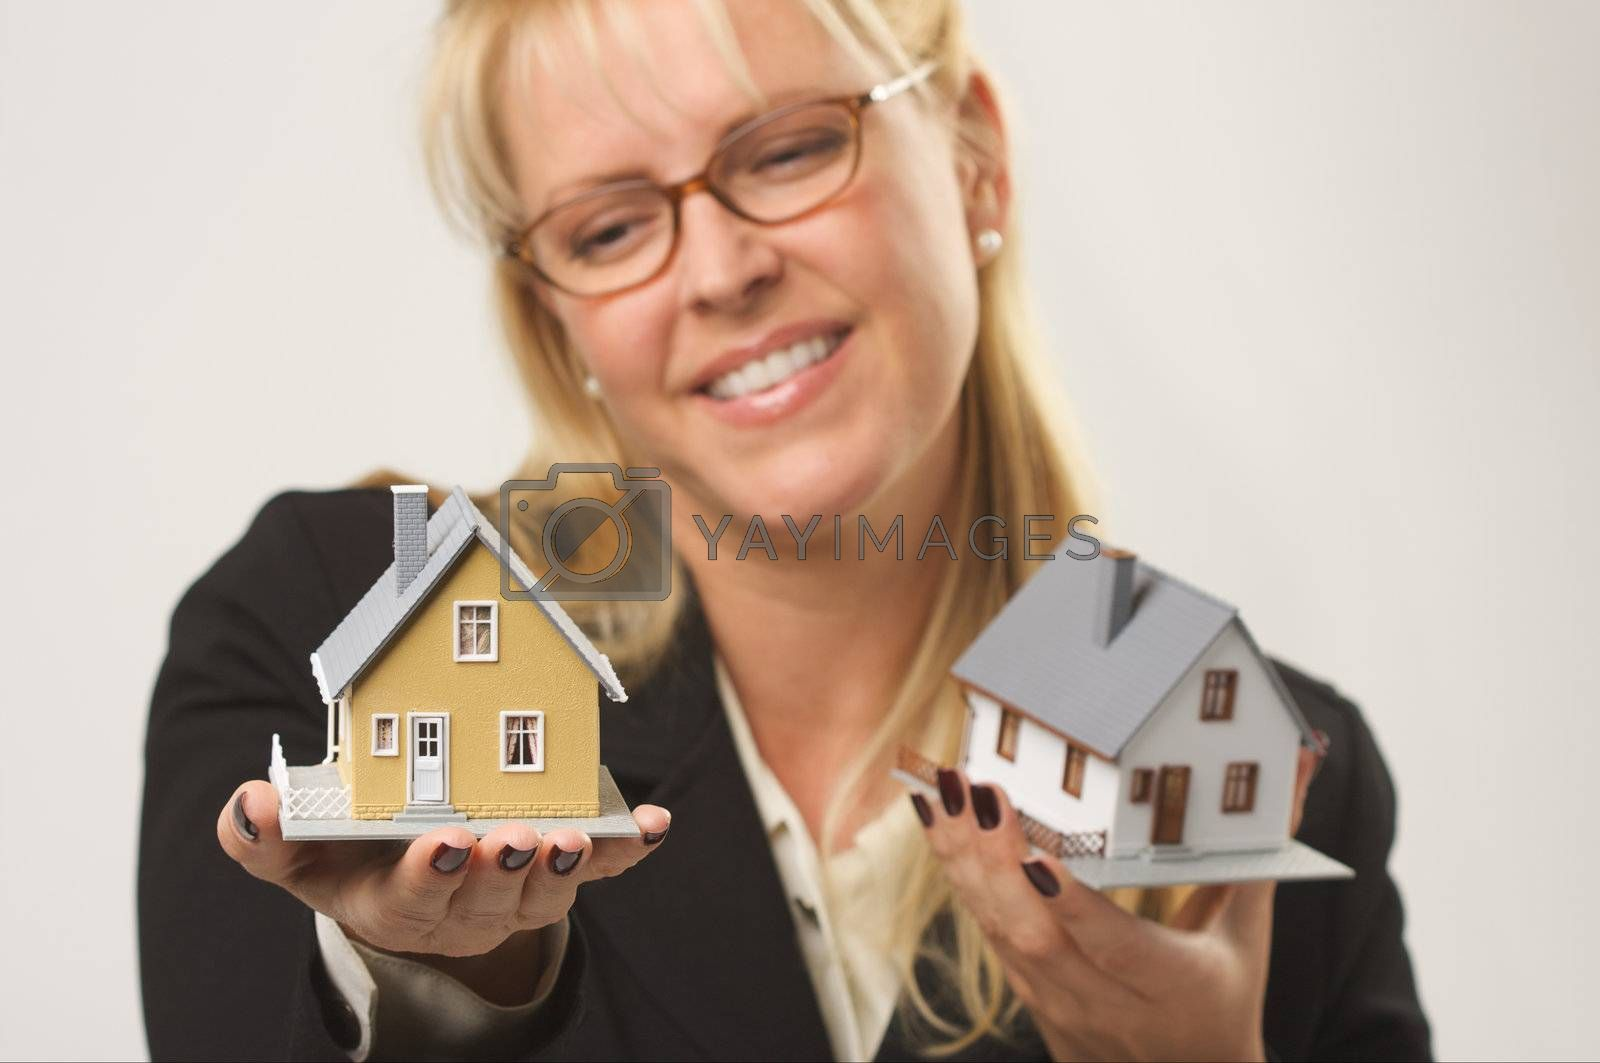 Female holding two houses contemplating each.